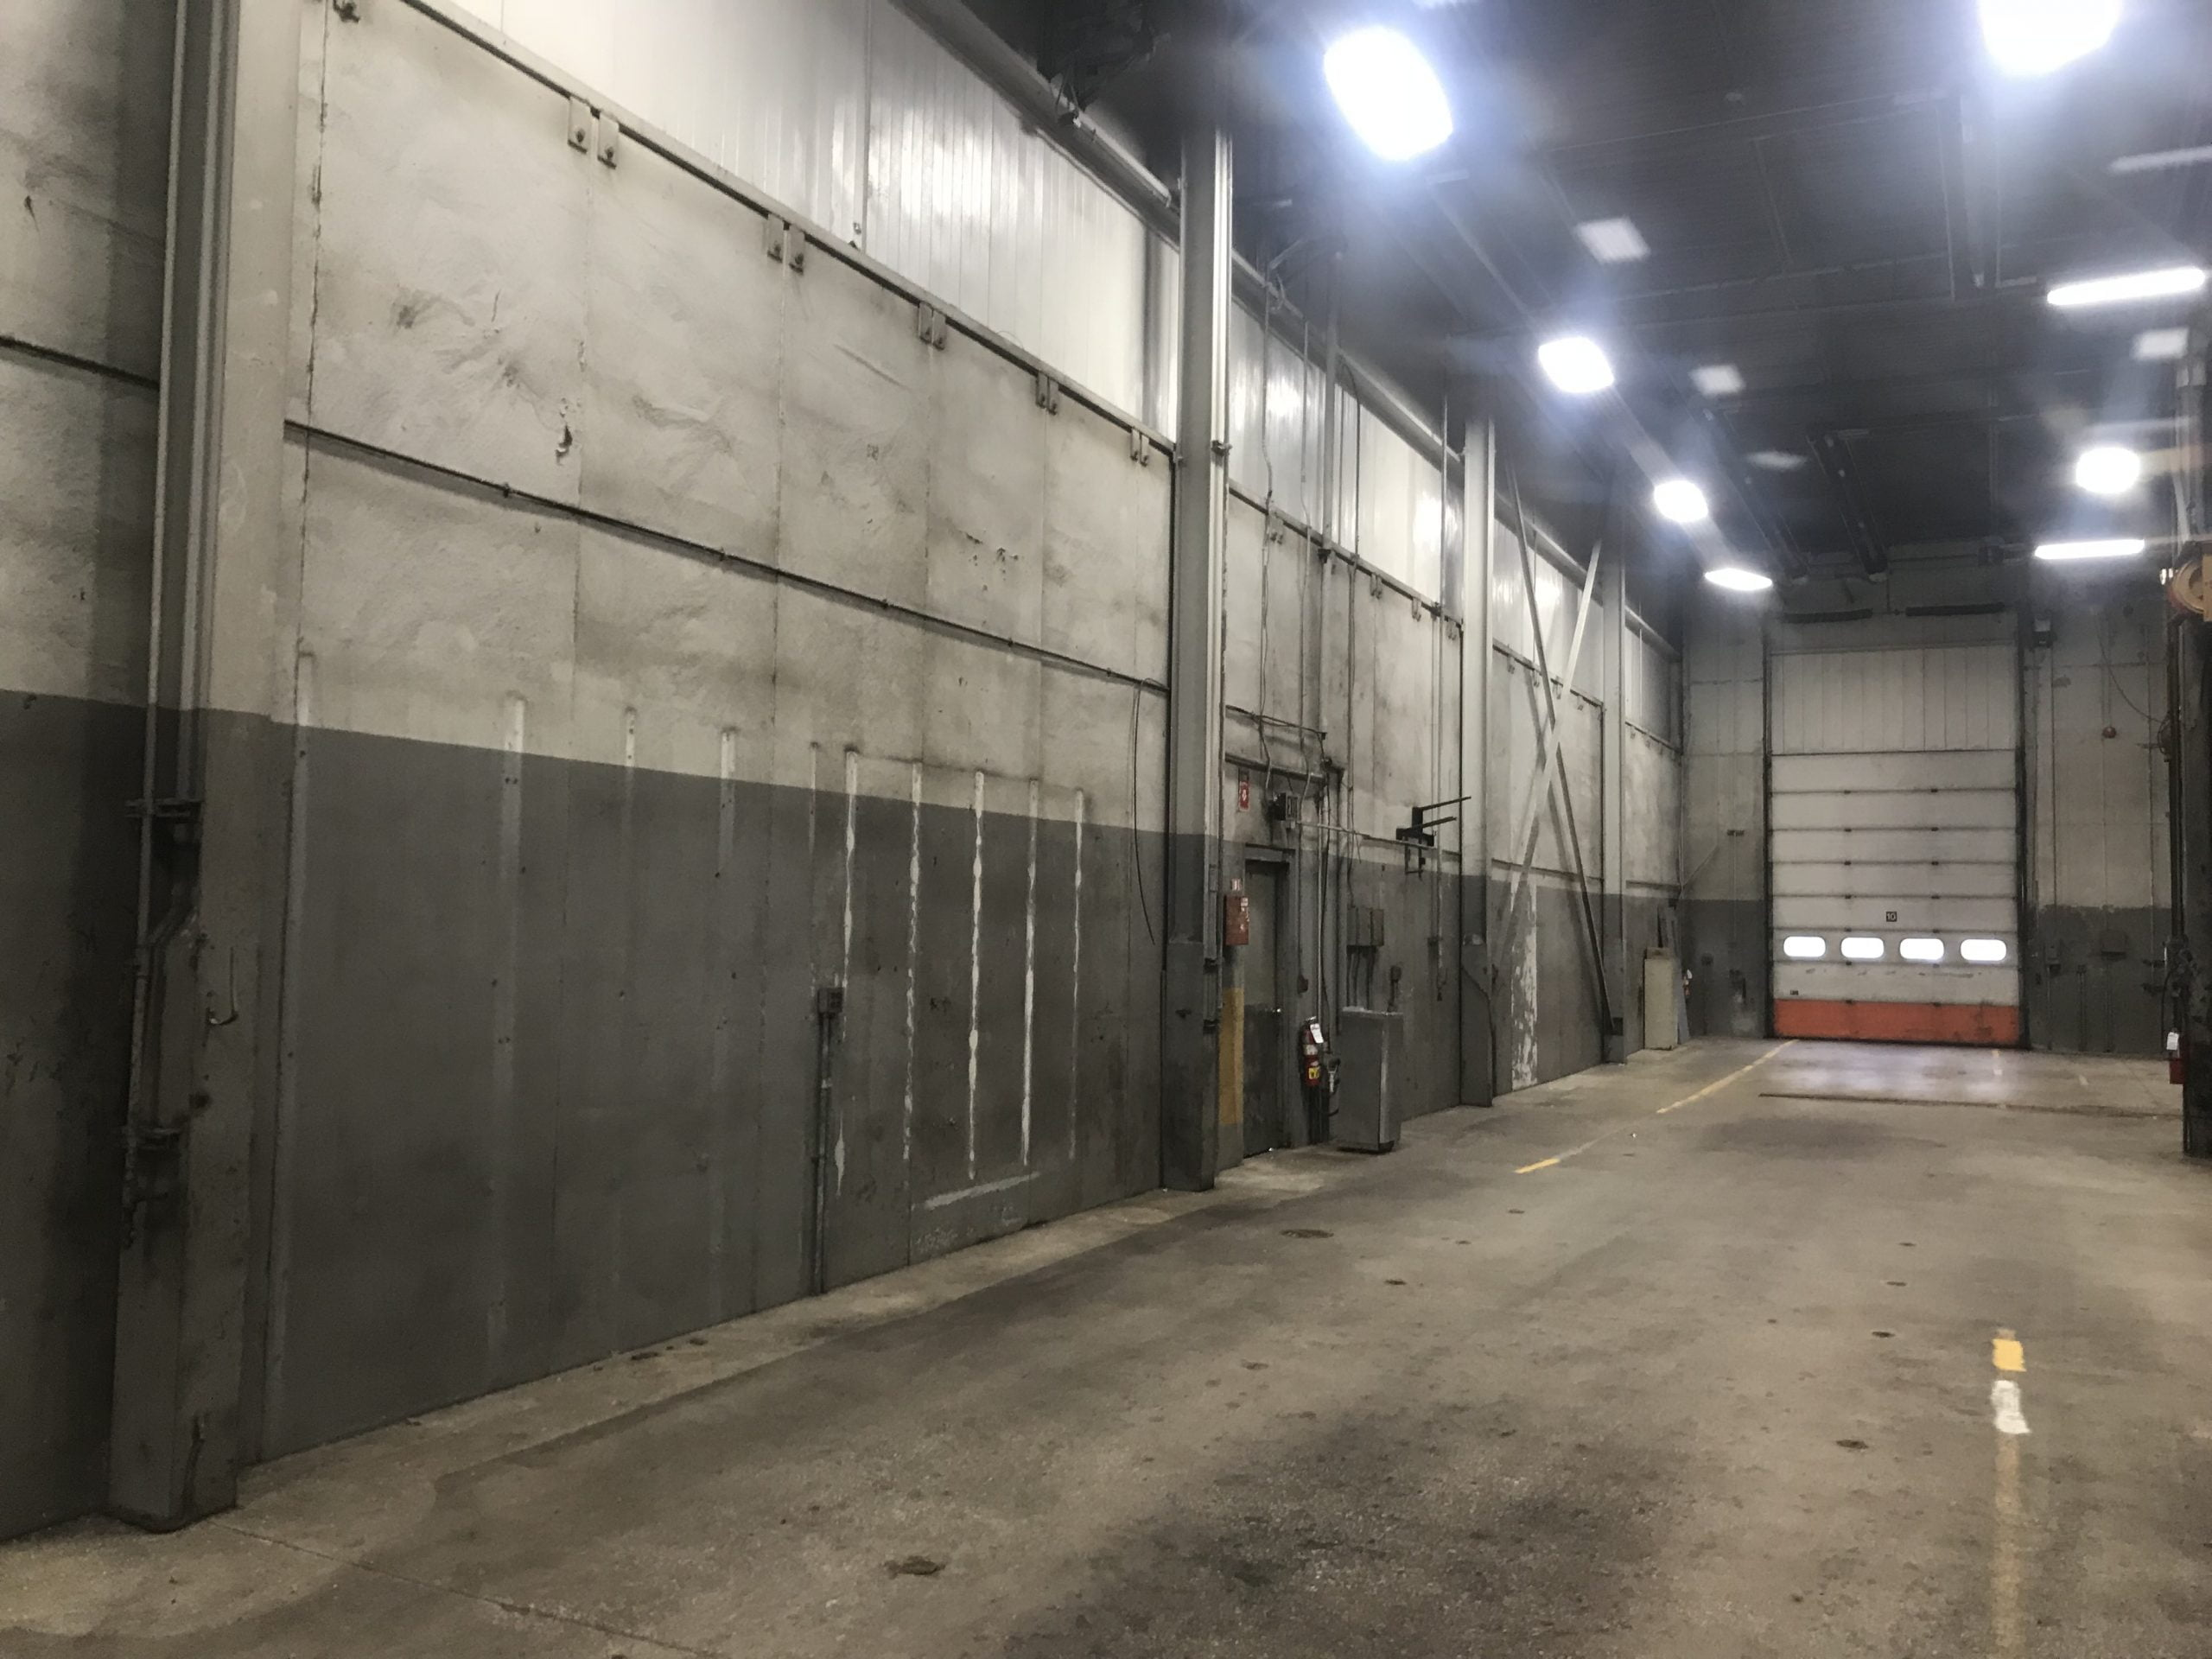 Commercial Garage Before Commercial Painting, Industrial Cleaning, And Dry Ice Blasting